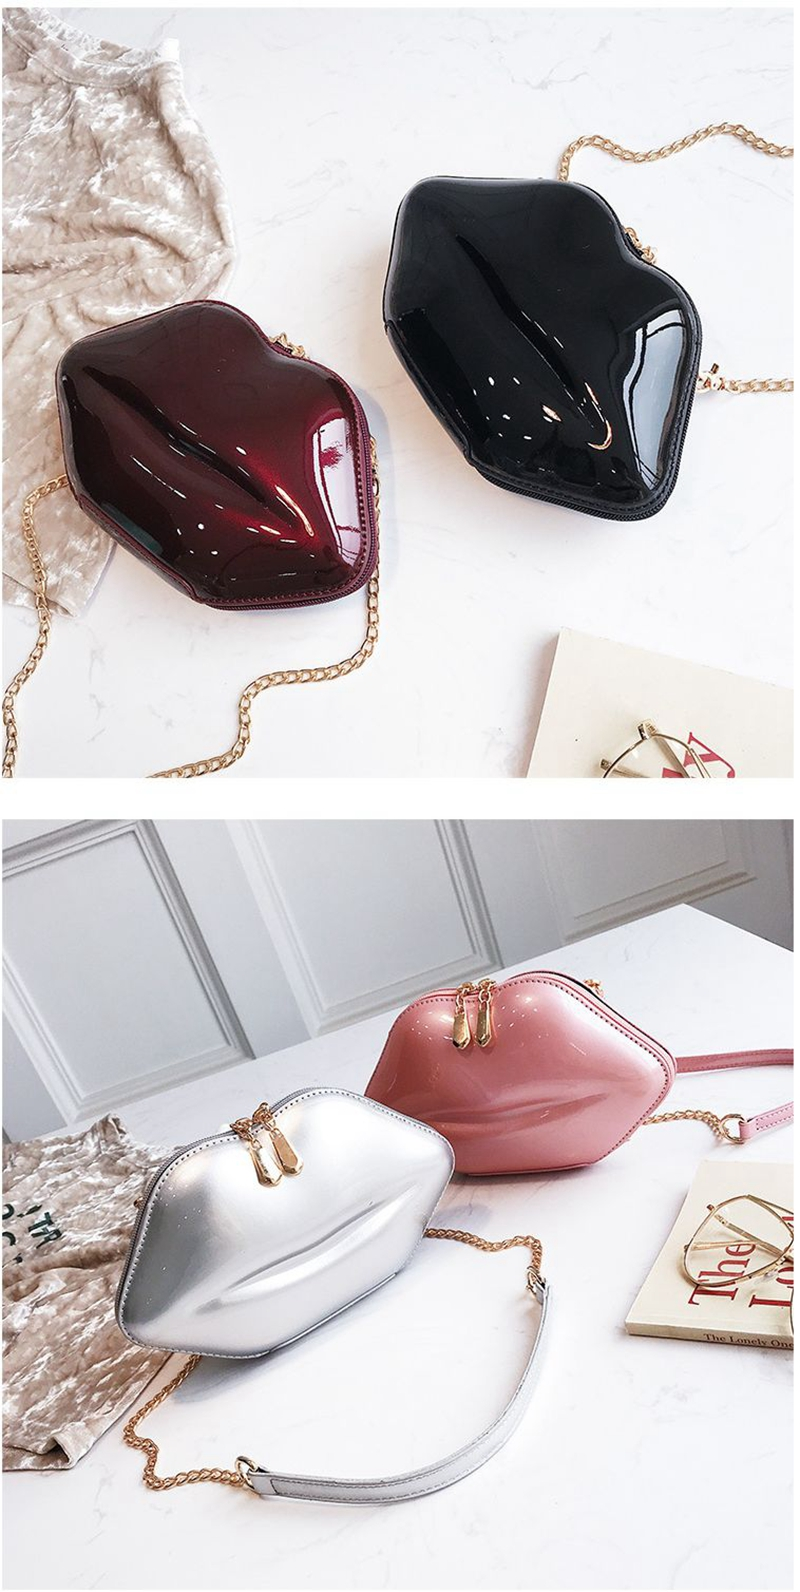 19c328bd3a155 Women Red Lips Clutch Bag High Quality Ladies Patent PU Leather ...